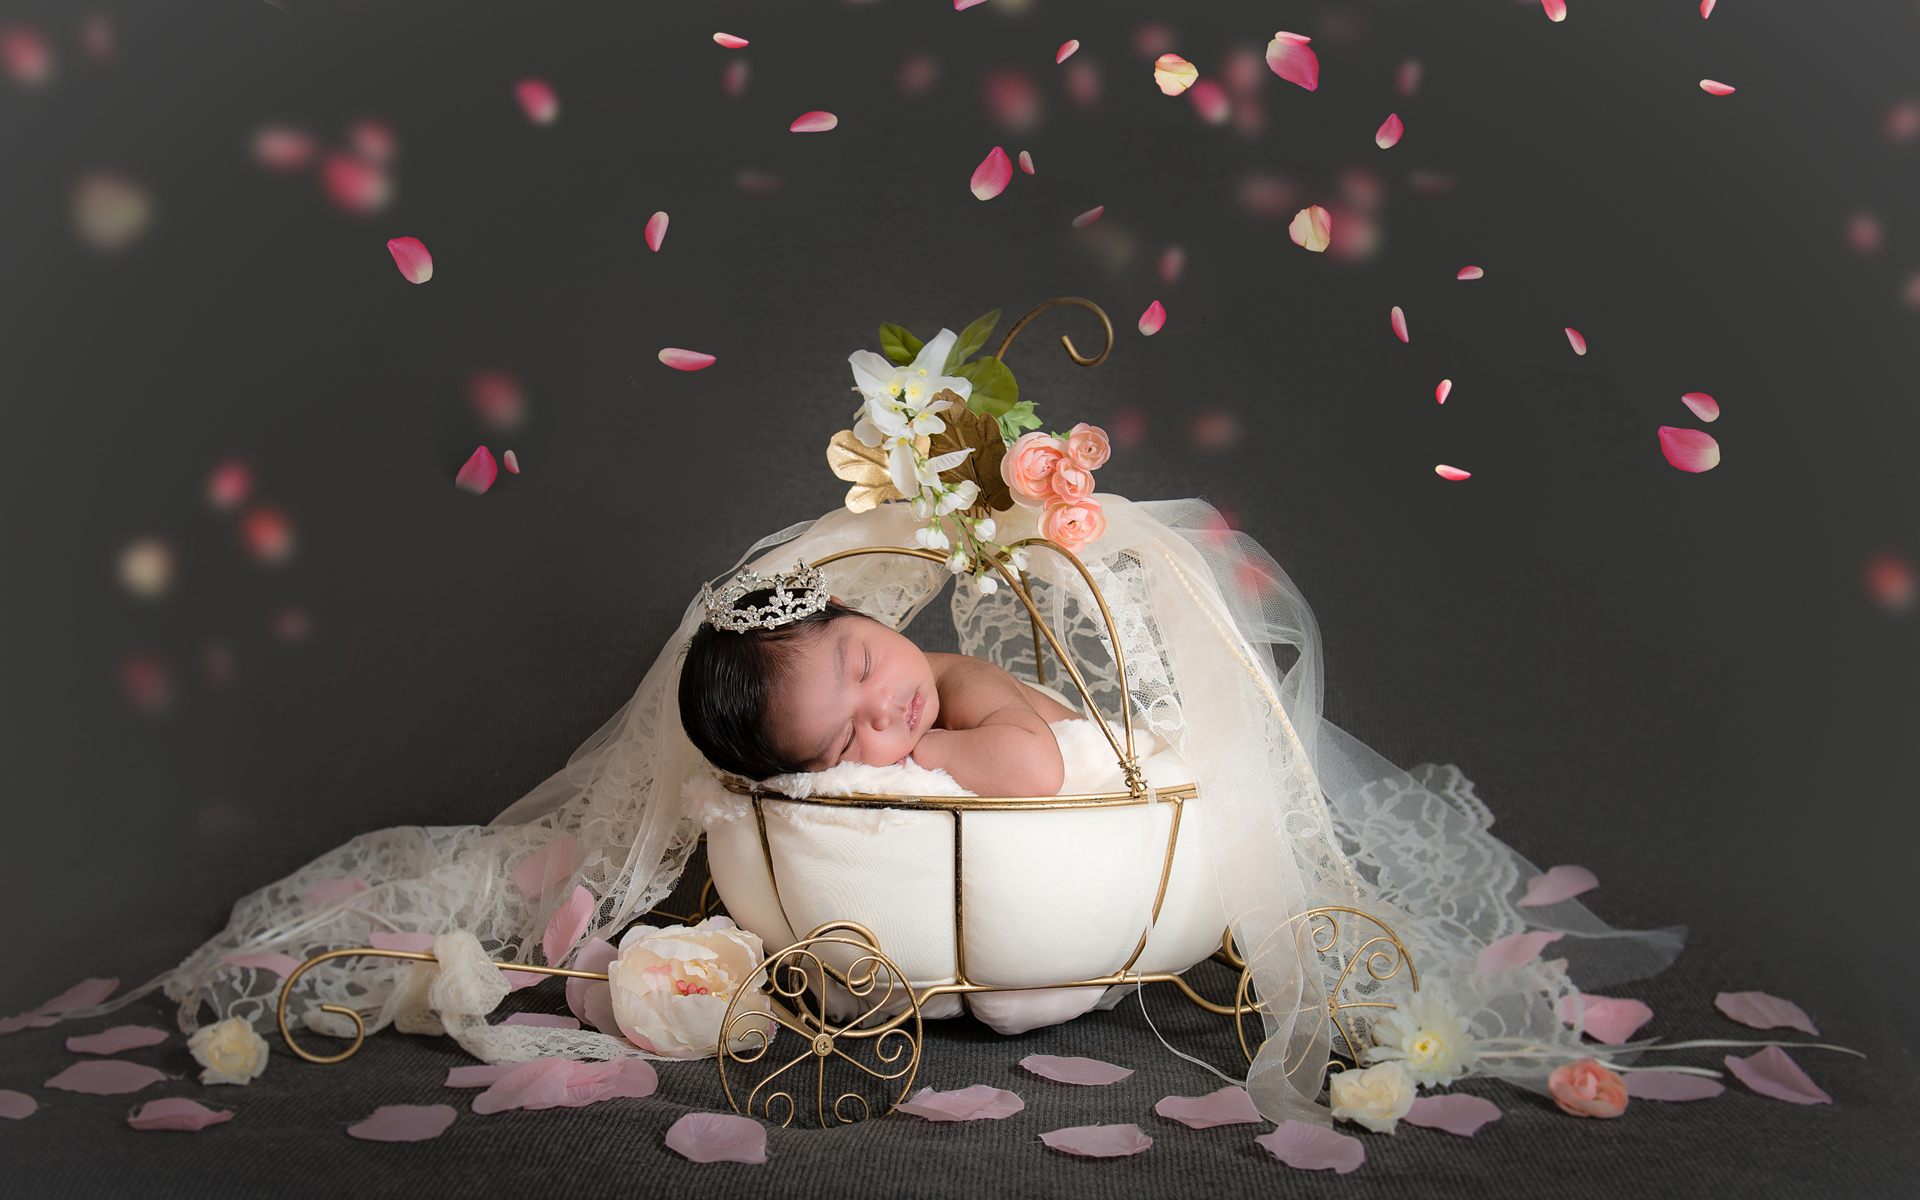 NJ-Newborn-photographer_6-NJ-Maternity-Photographer-Dream-Reality-Photography_edited-1